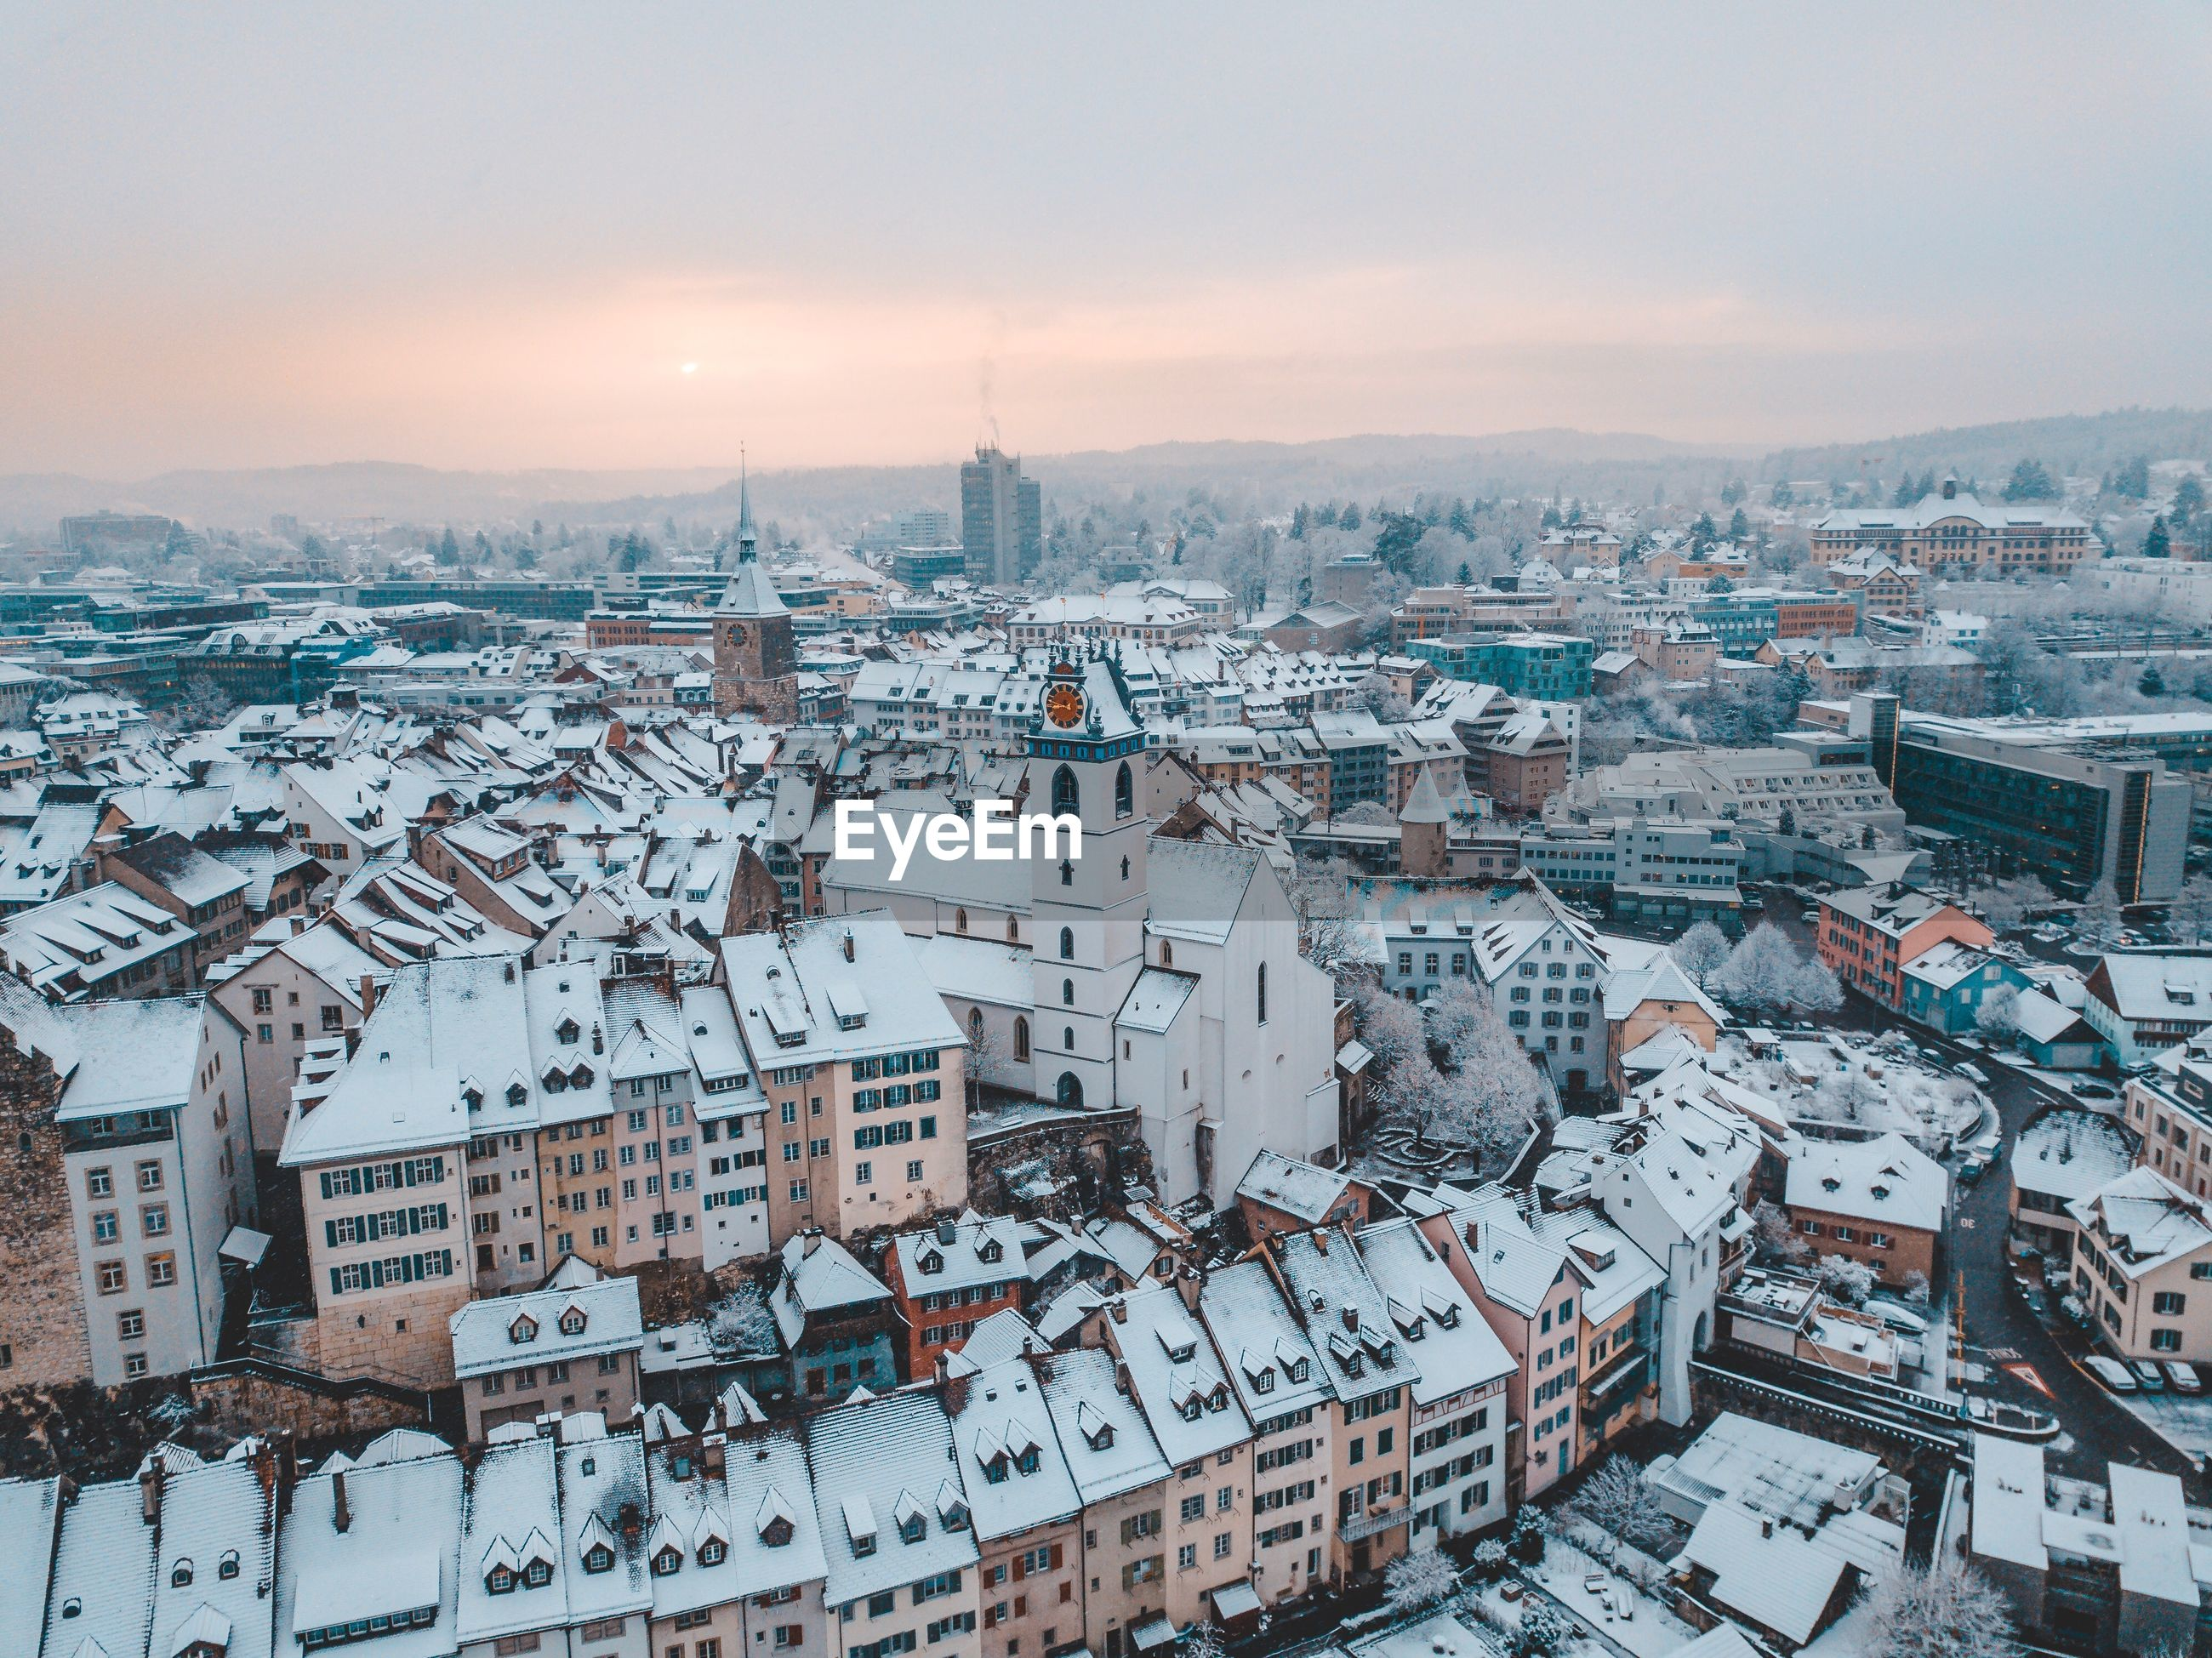 Aerial view of snow covered townscape against sky at sunset